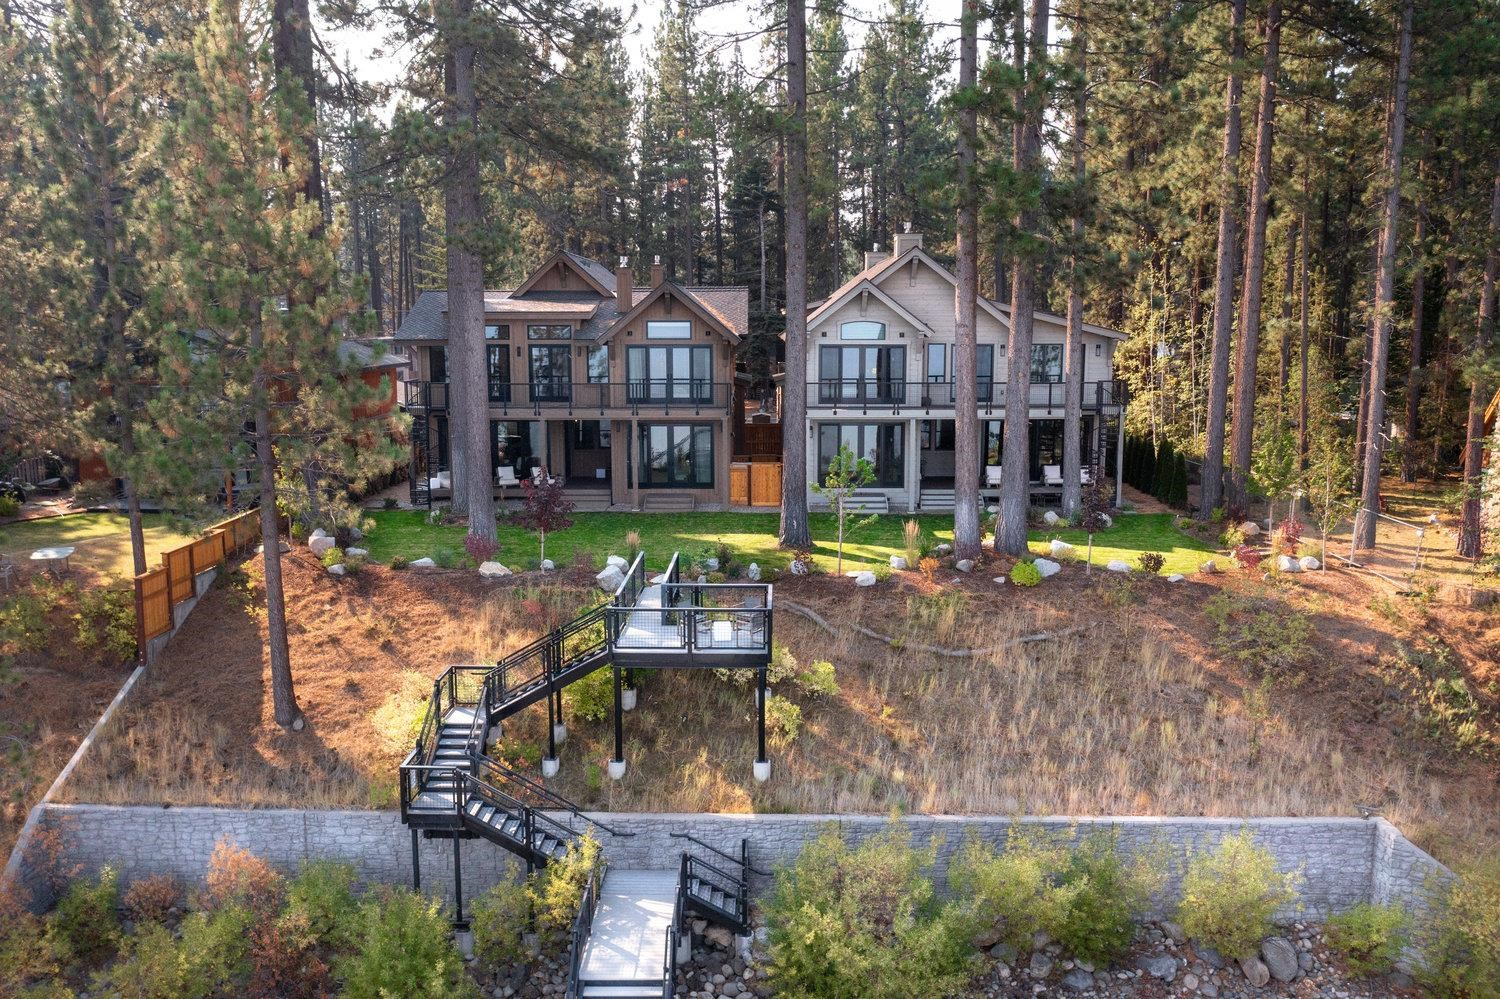 Image for 973 Lakeview Avenue, South Lake Tahoe, CA 96150-0000